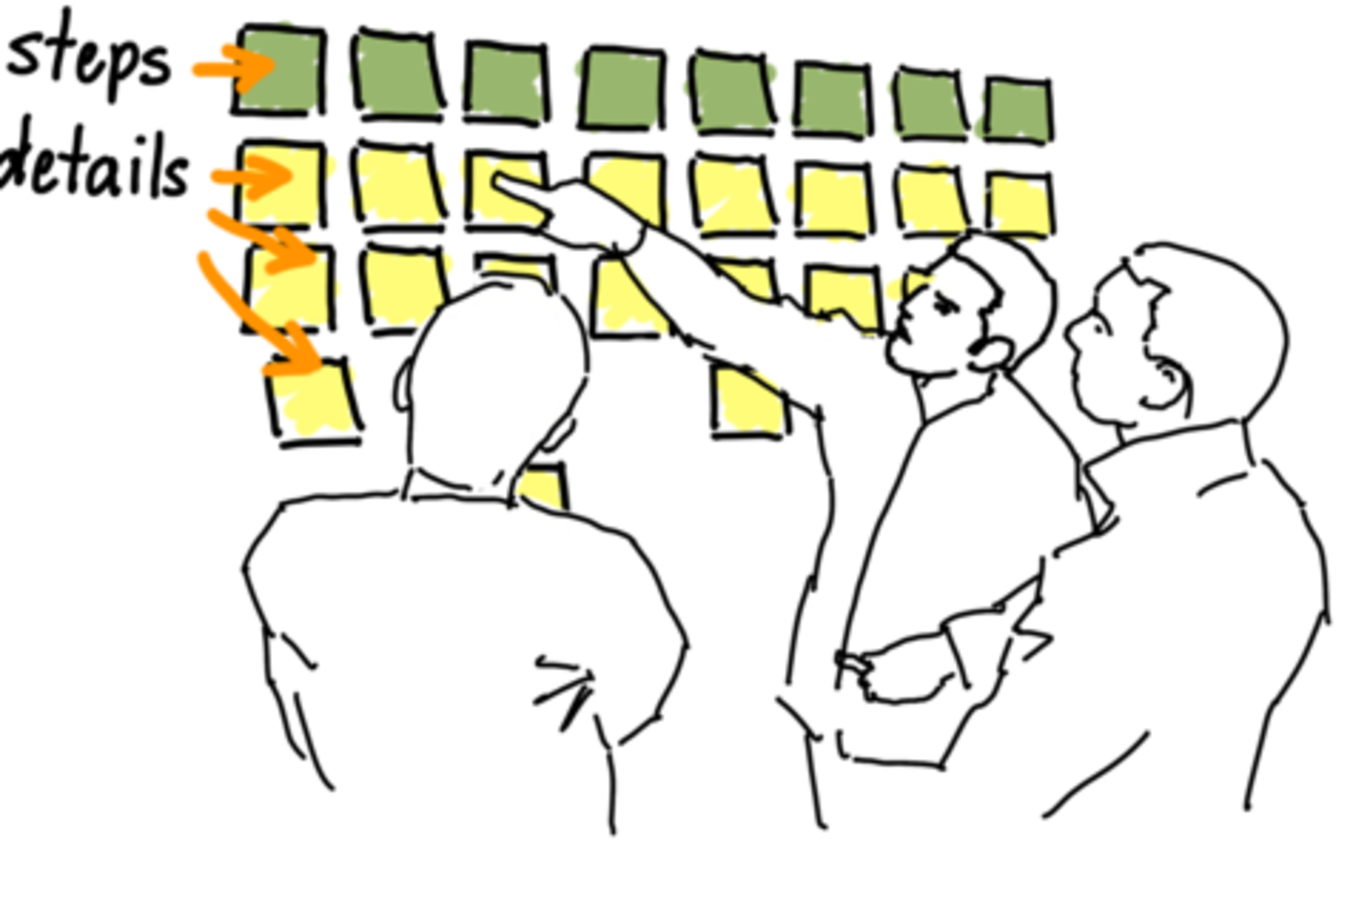 5 User Story Mapping tools you should try